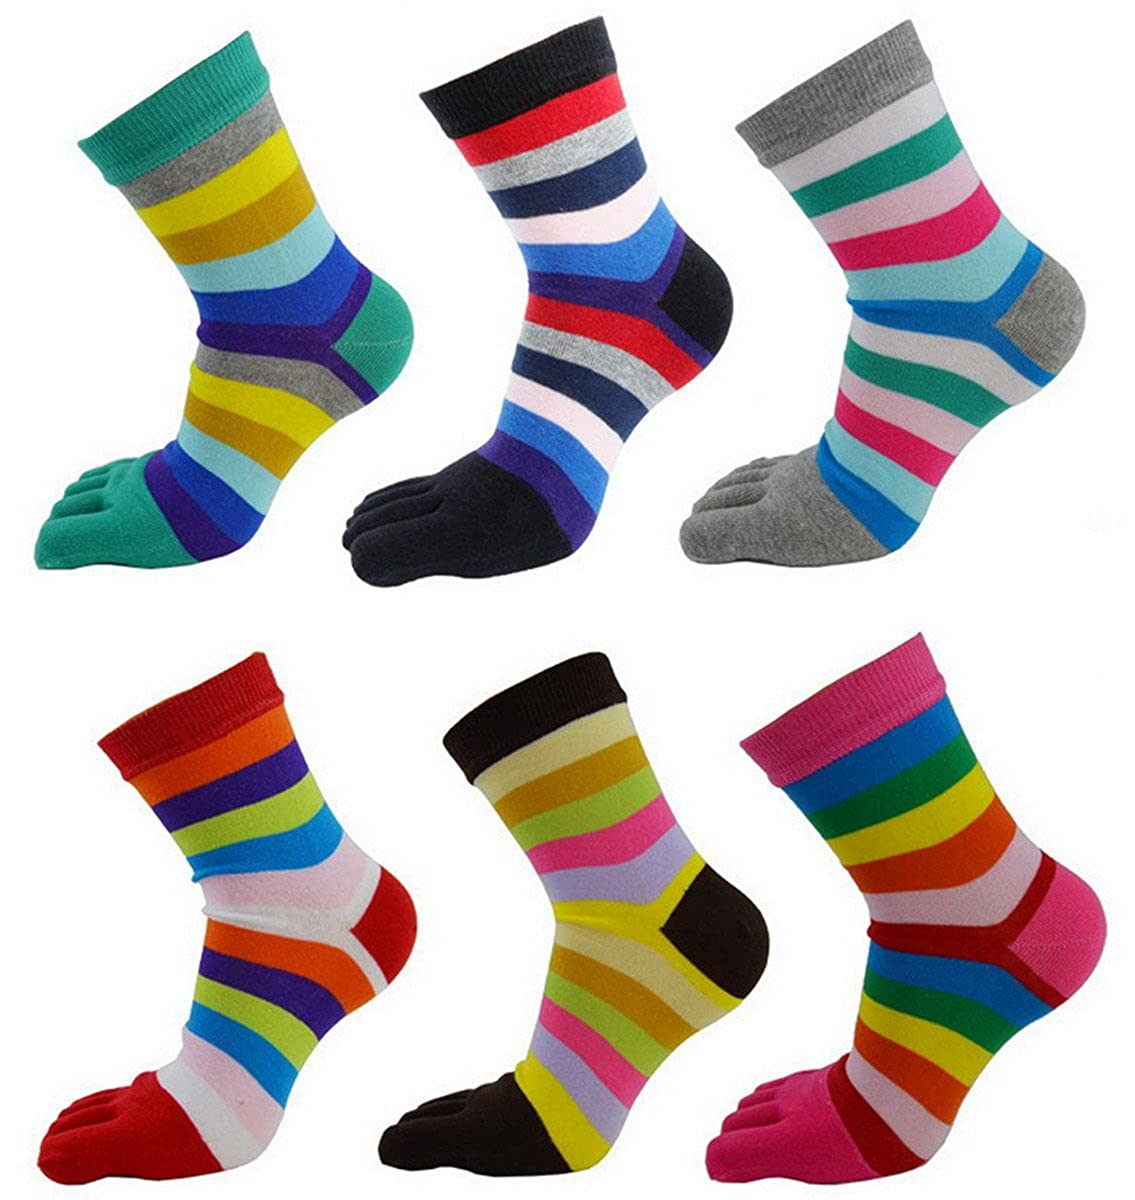 Women's Cute Casual Striped Five Toe Crew Athletic Finger Socks 6-Pack AHA